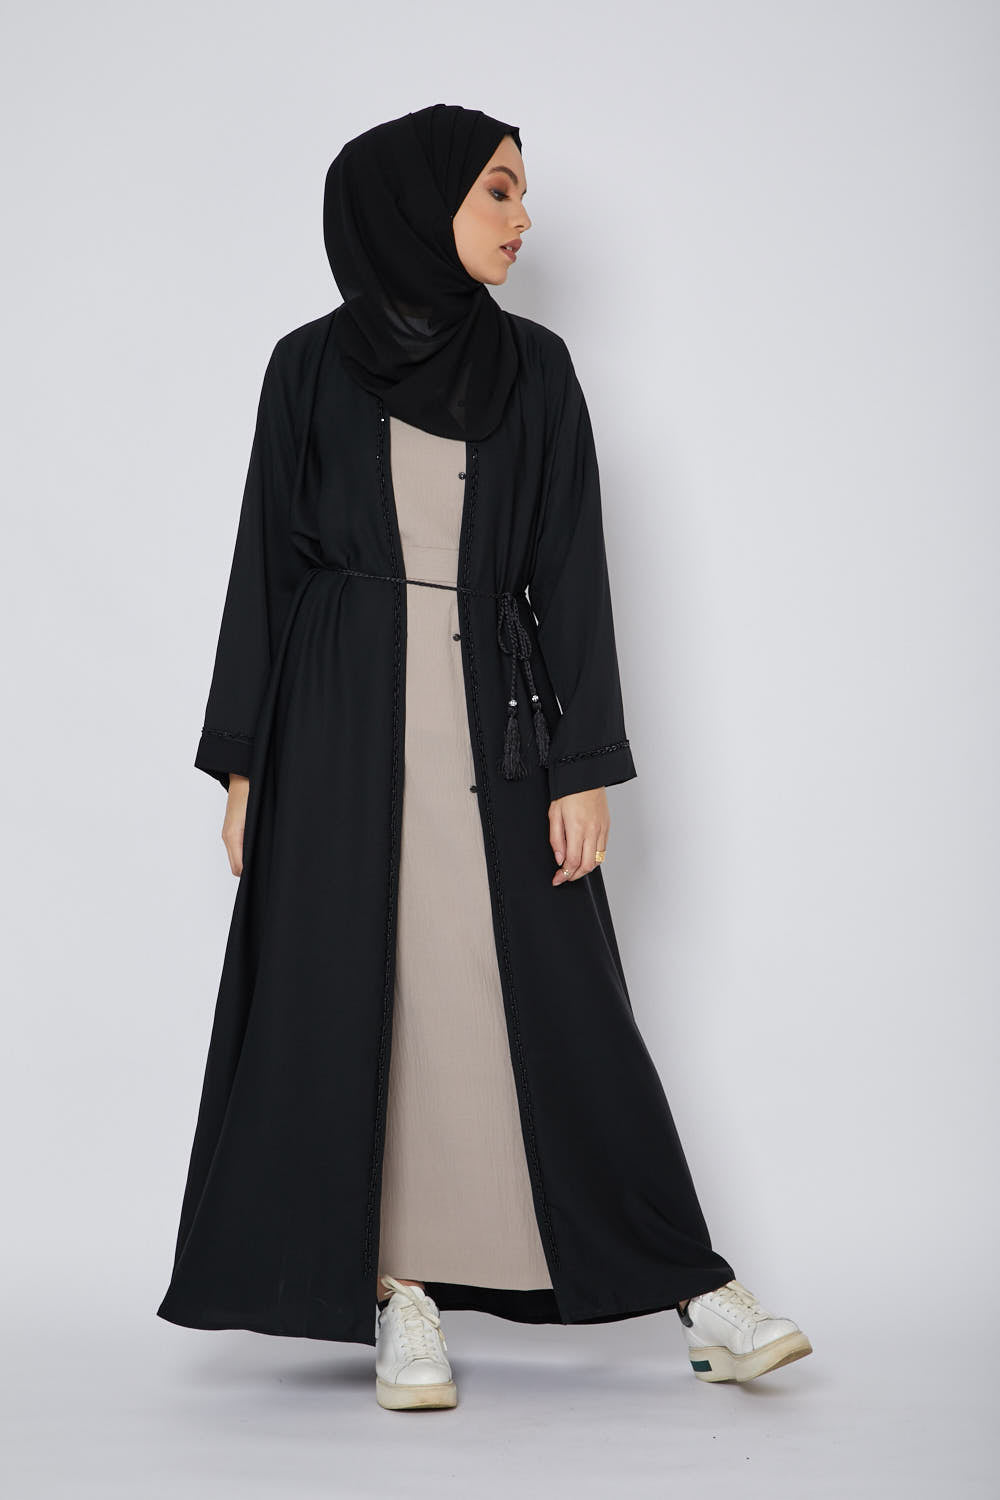 Classic Black Open Abaya with Bejewelled Piping